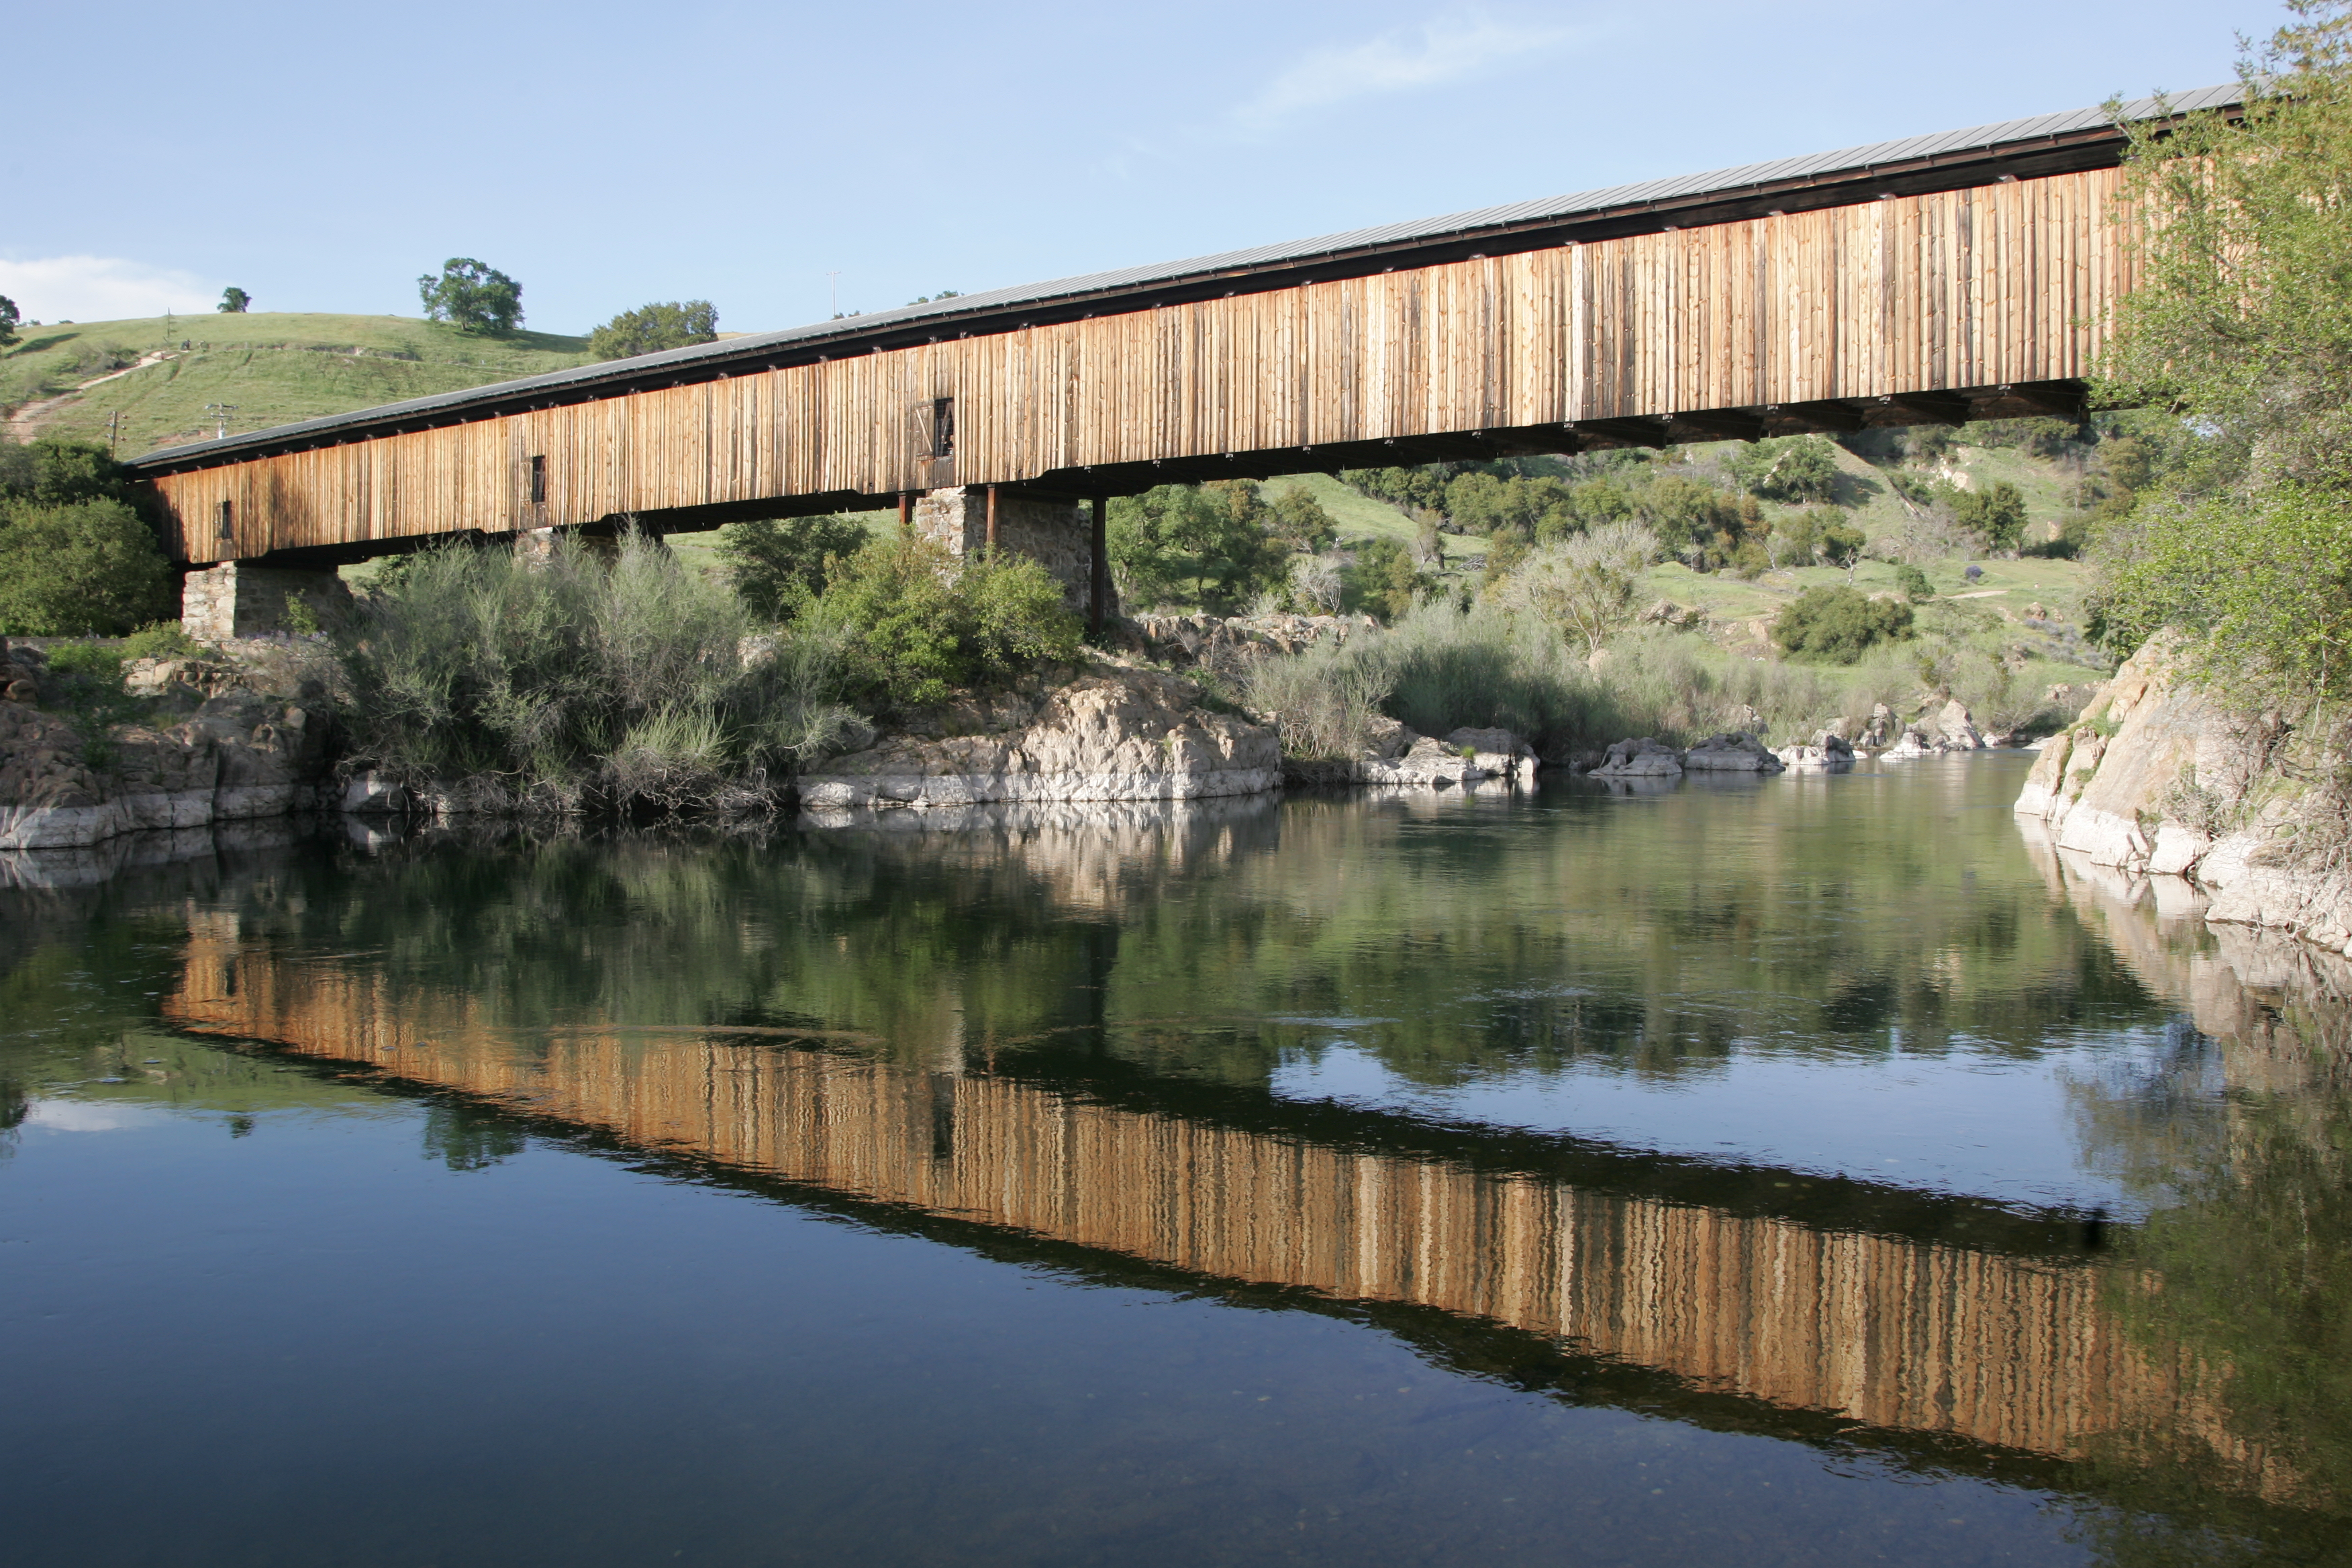 Corps to restore historic knights ferry covered bridge for Knights bridge